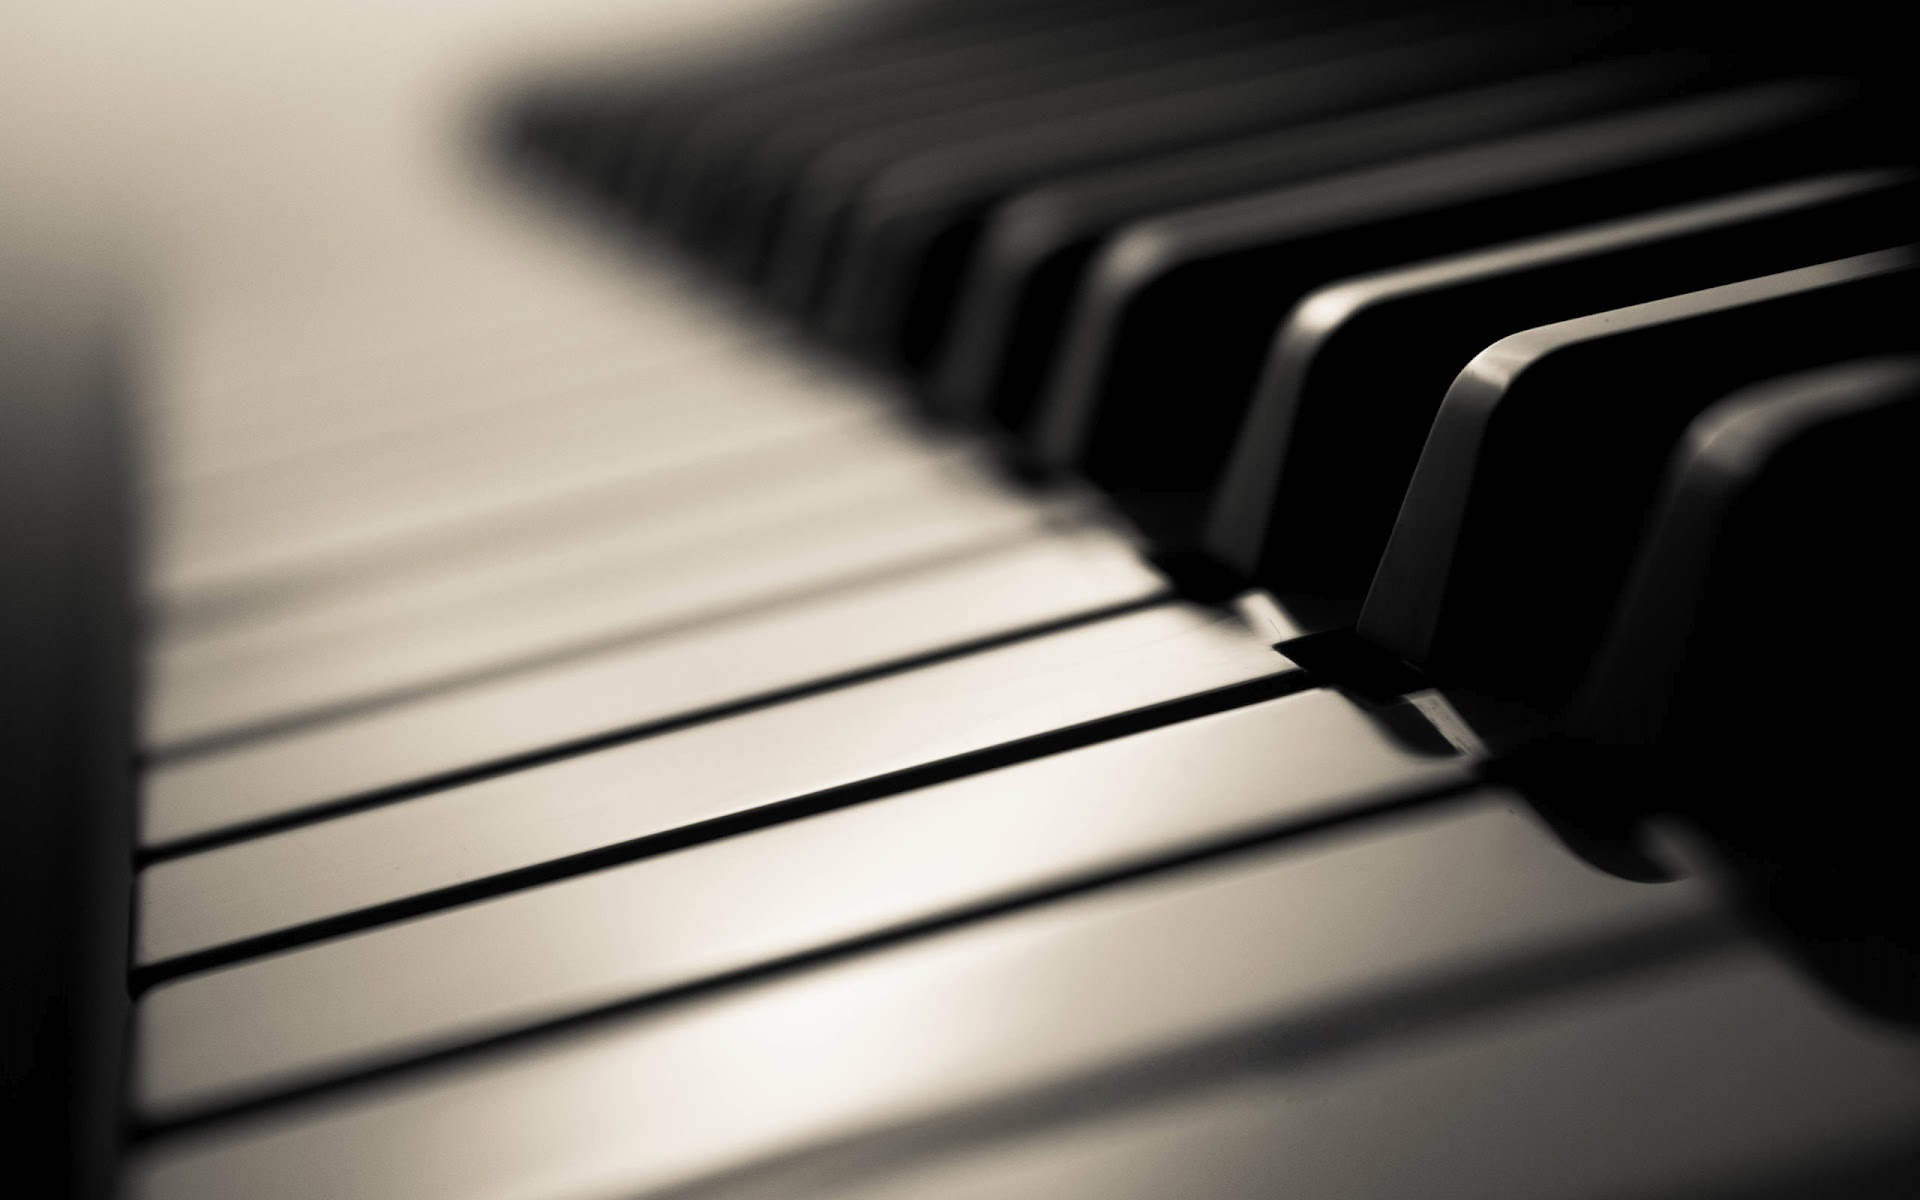 Playing Piano Wallpaper